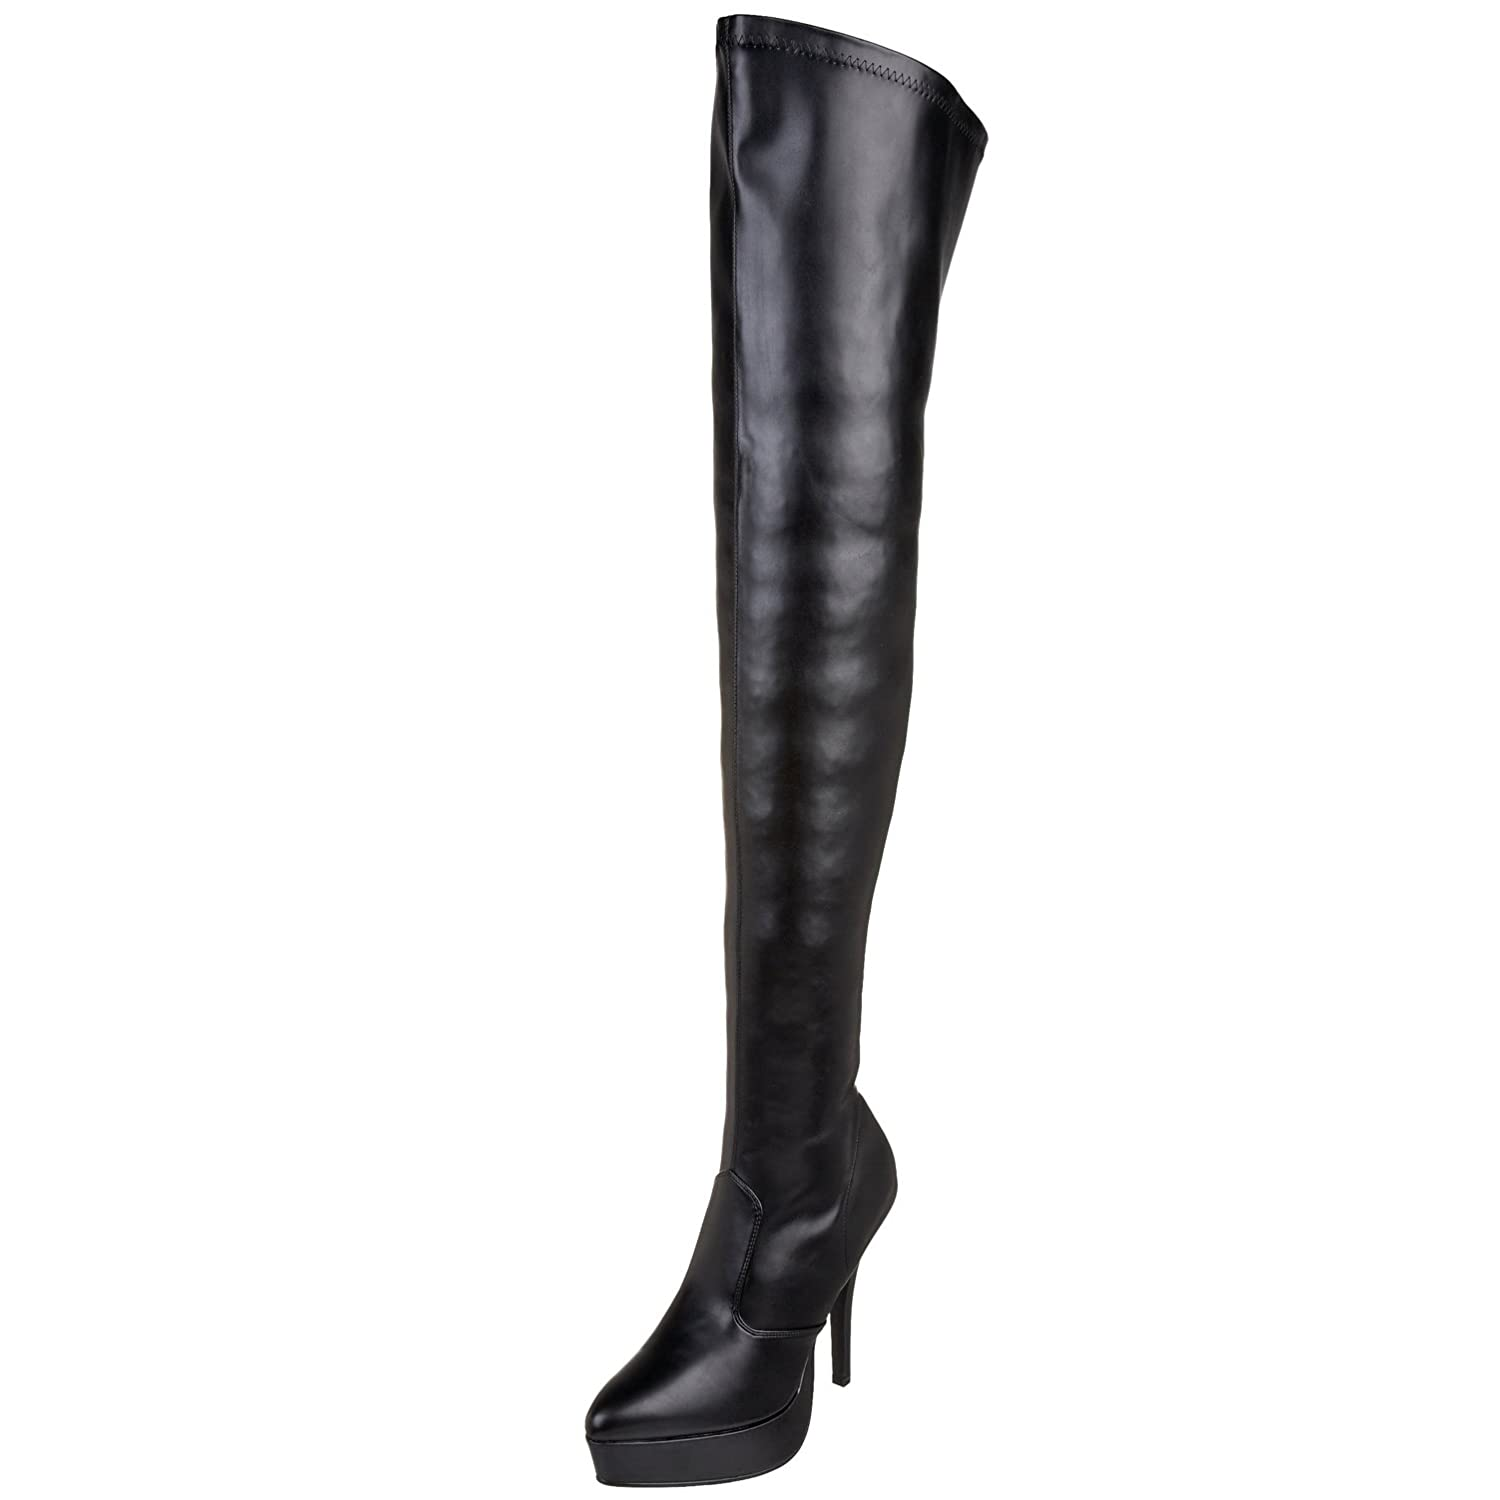 durable service womens thigh high boots 5 inch heels black